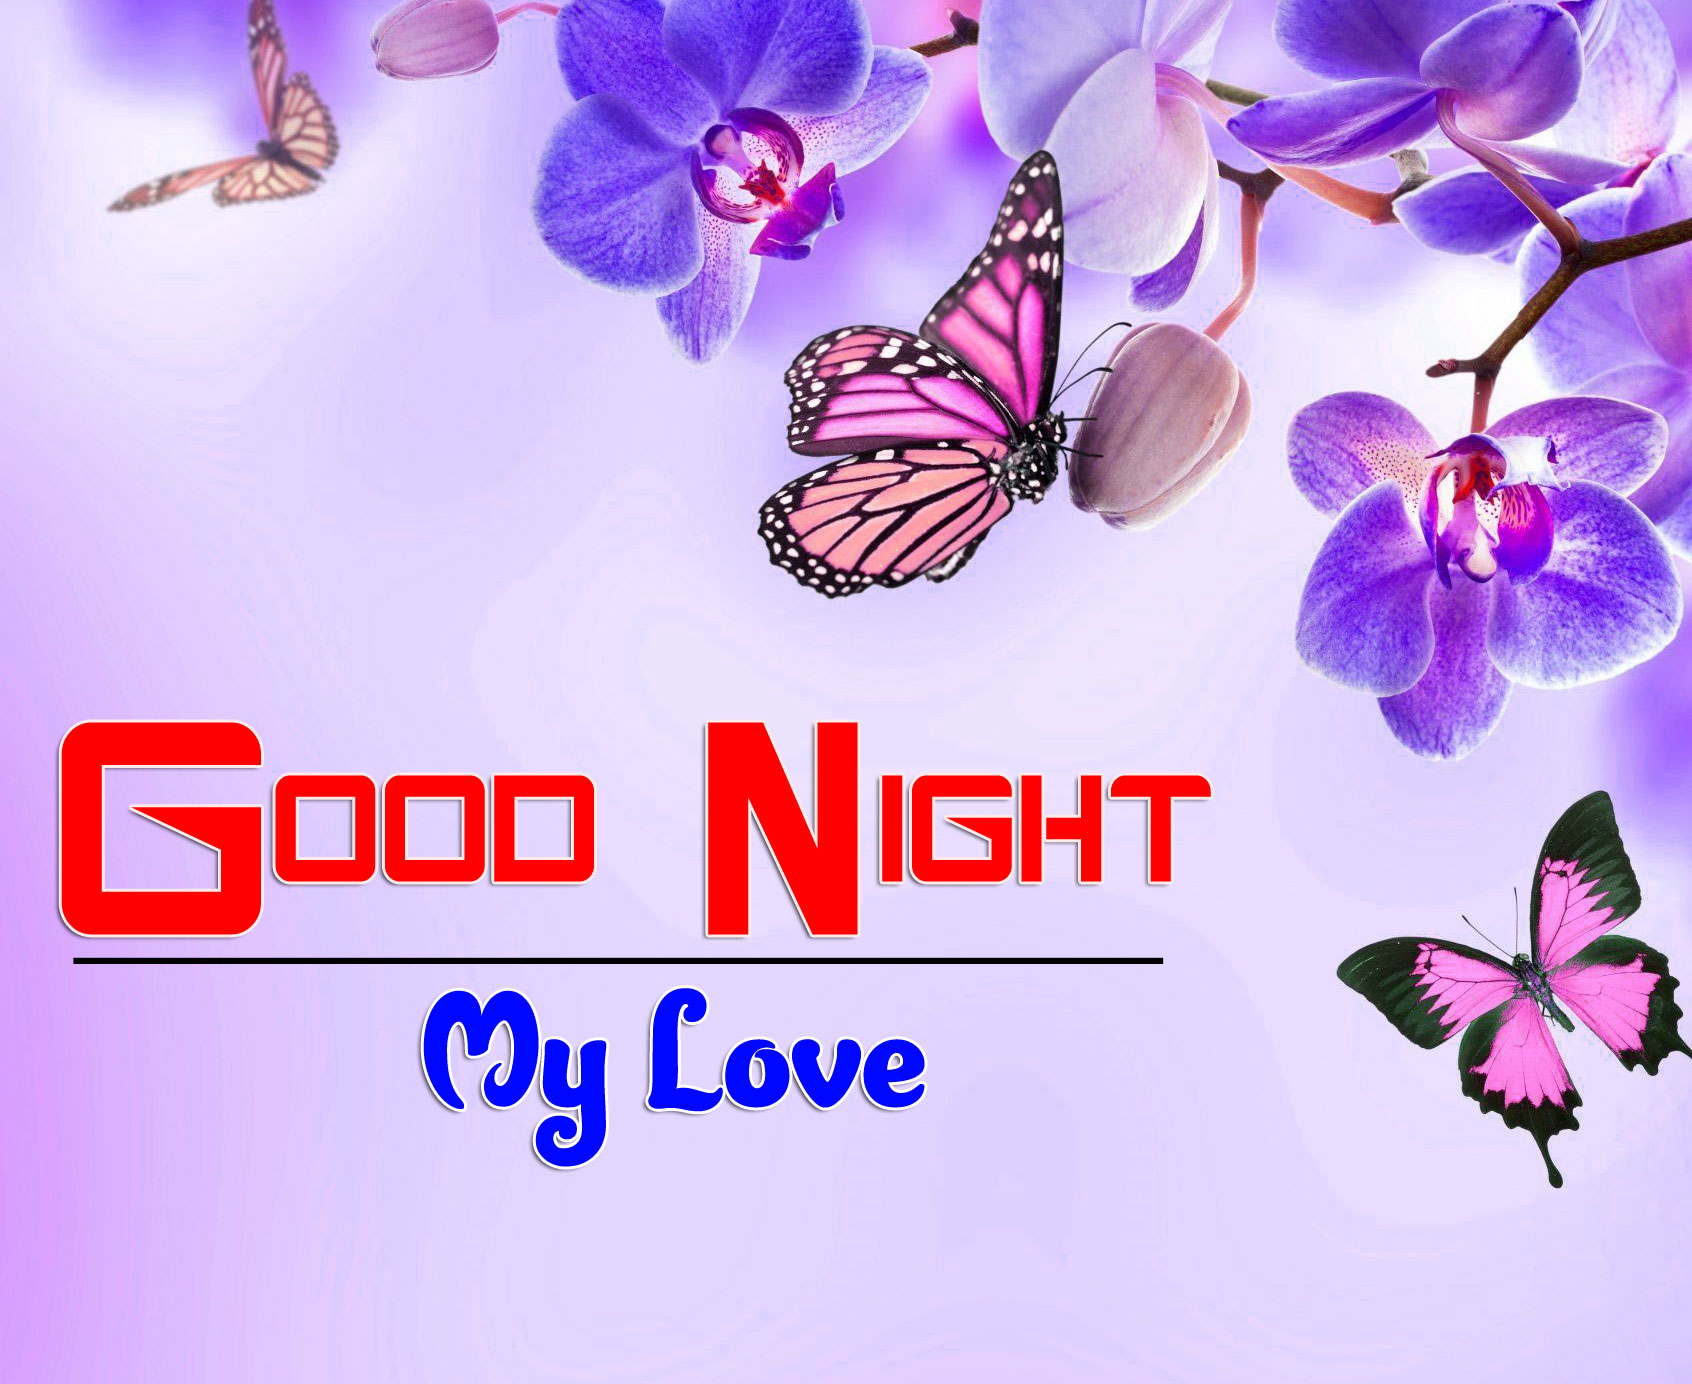 Best Quality Girlfriend Good Night Wishes Wallpaper Free Download